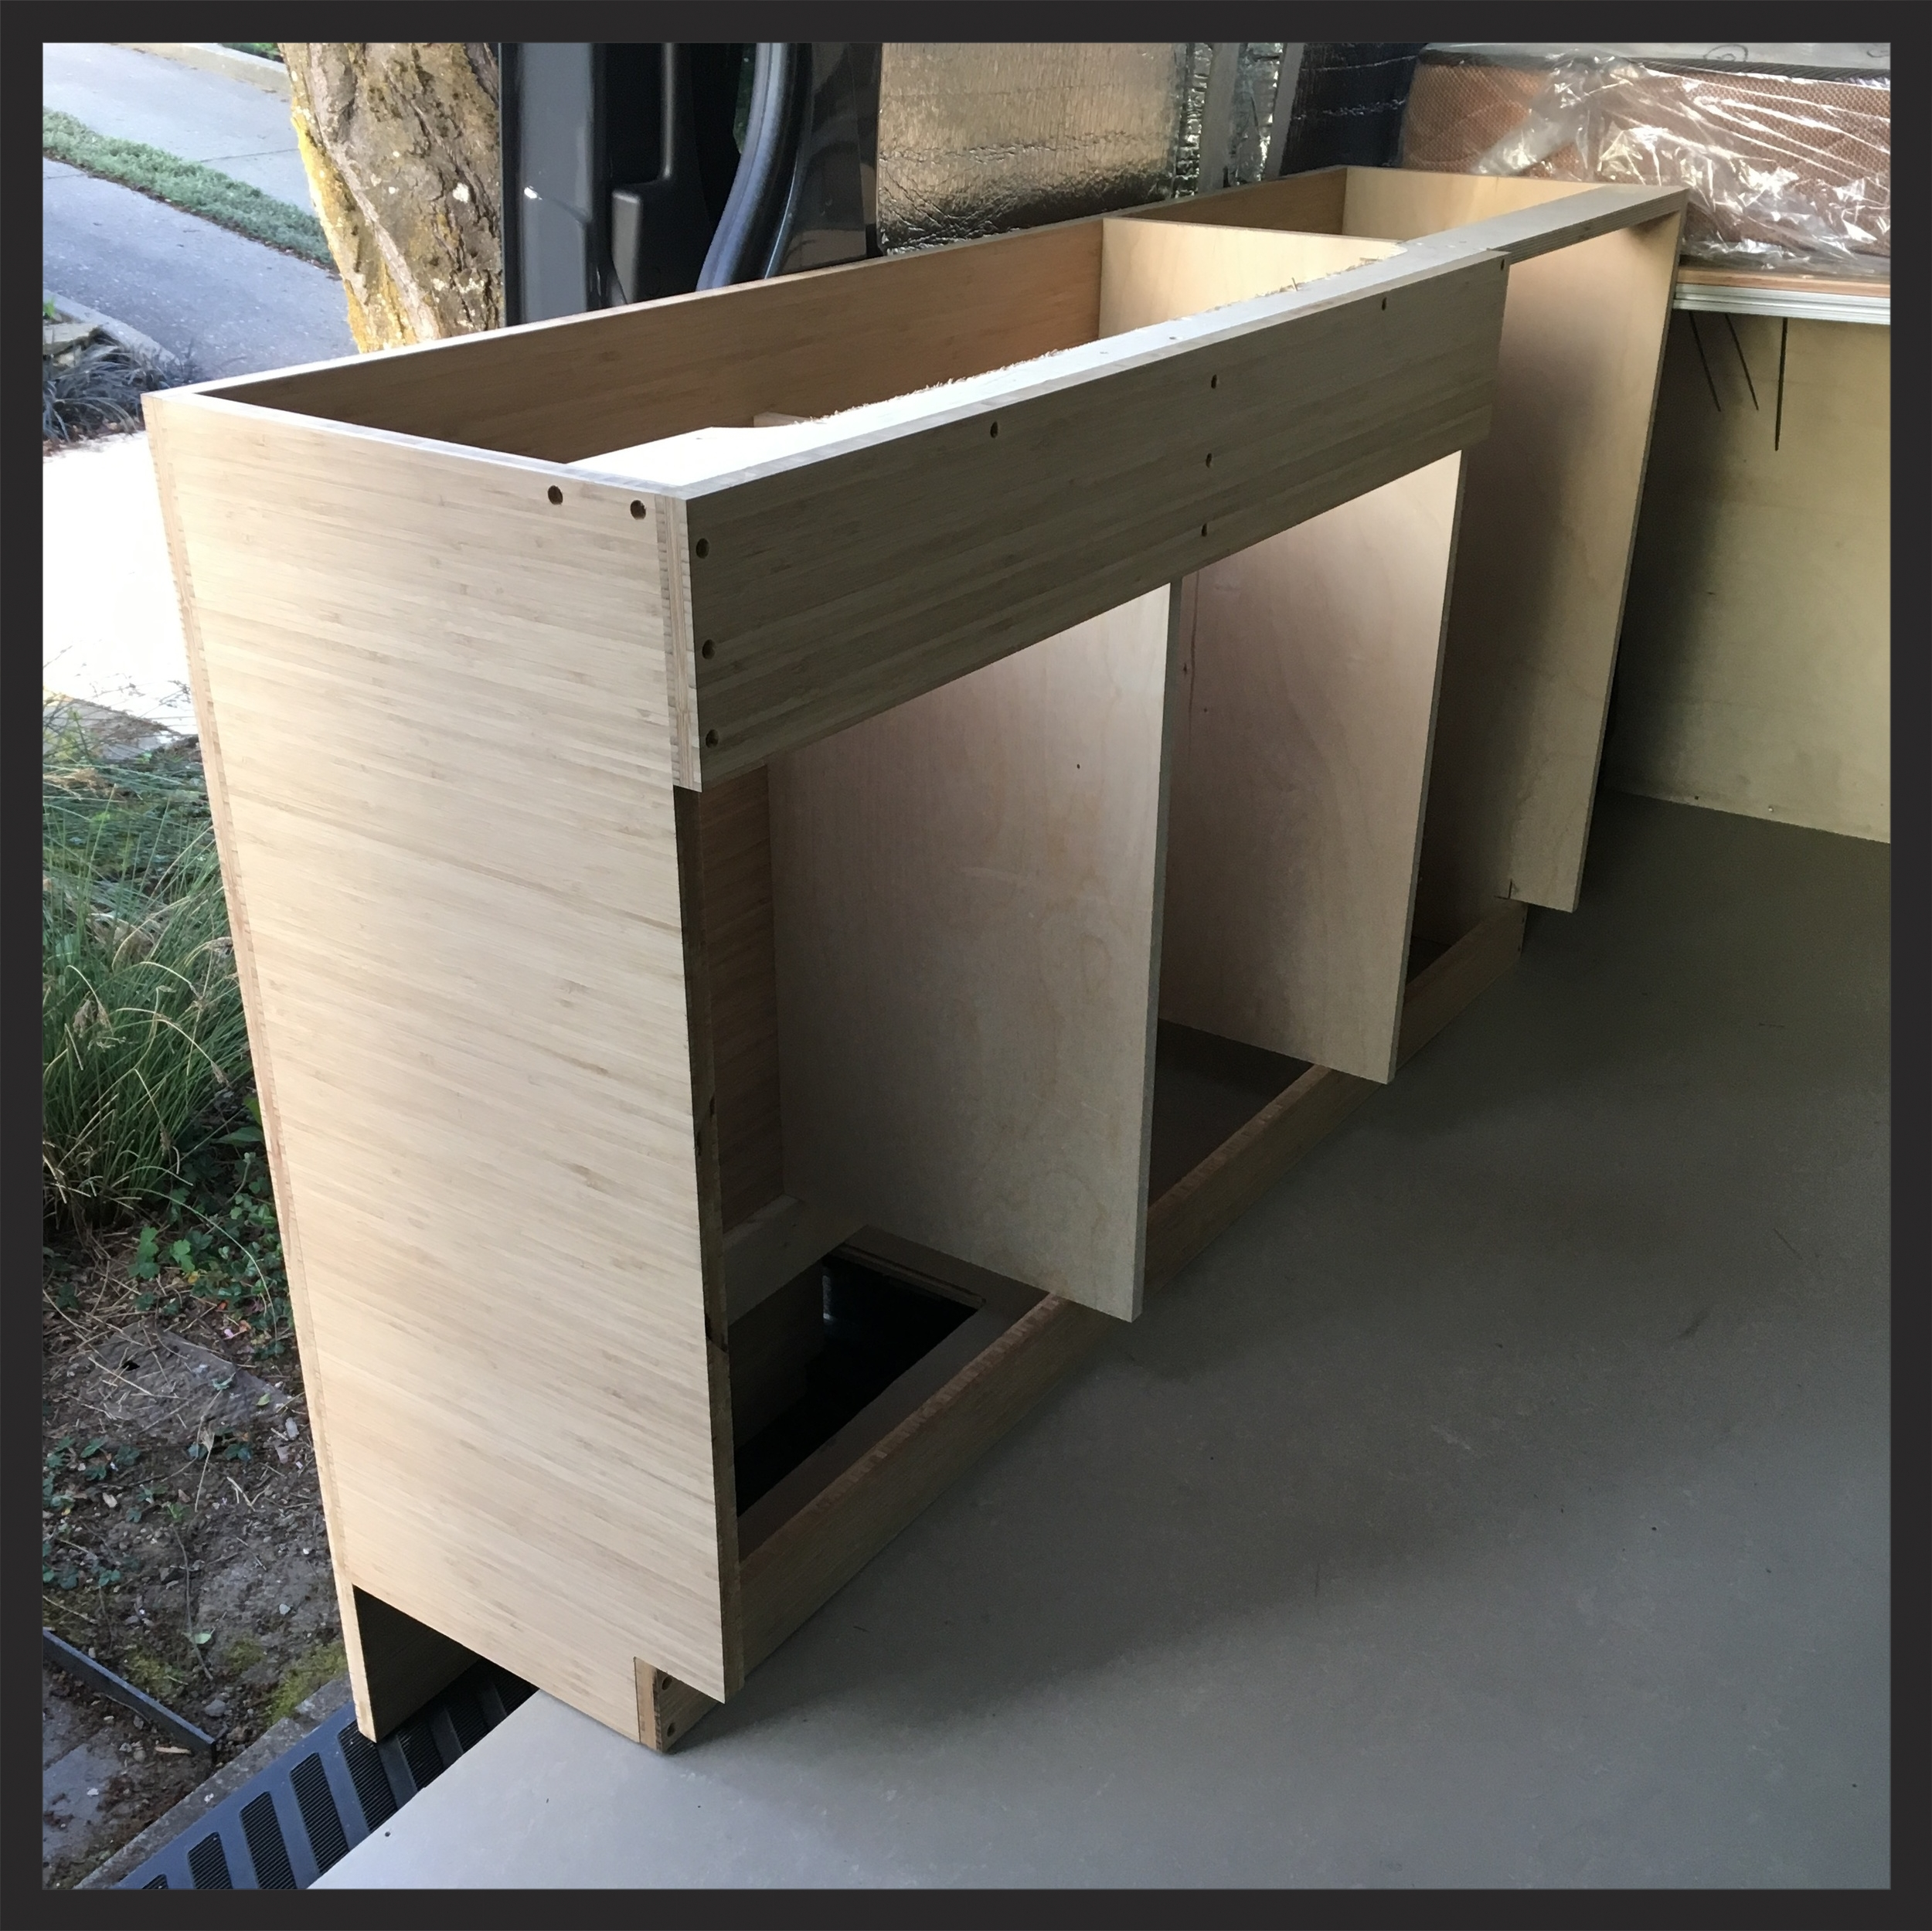 The center will have the sink above it and will have a door in front, the left and side will be drawers.